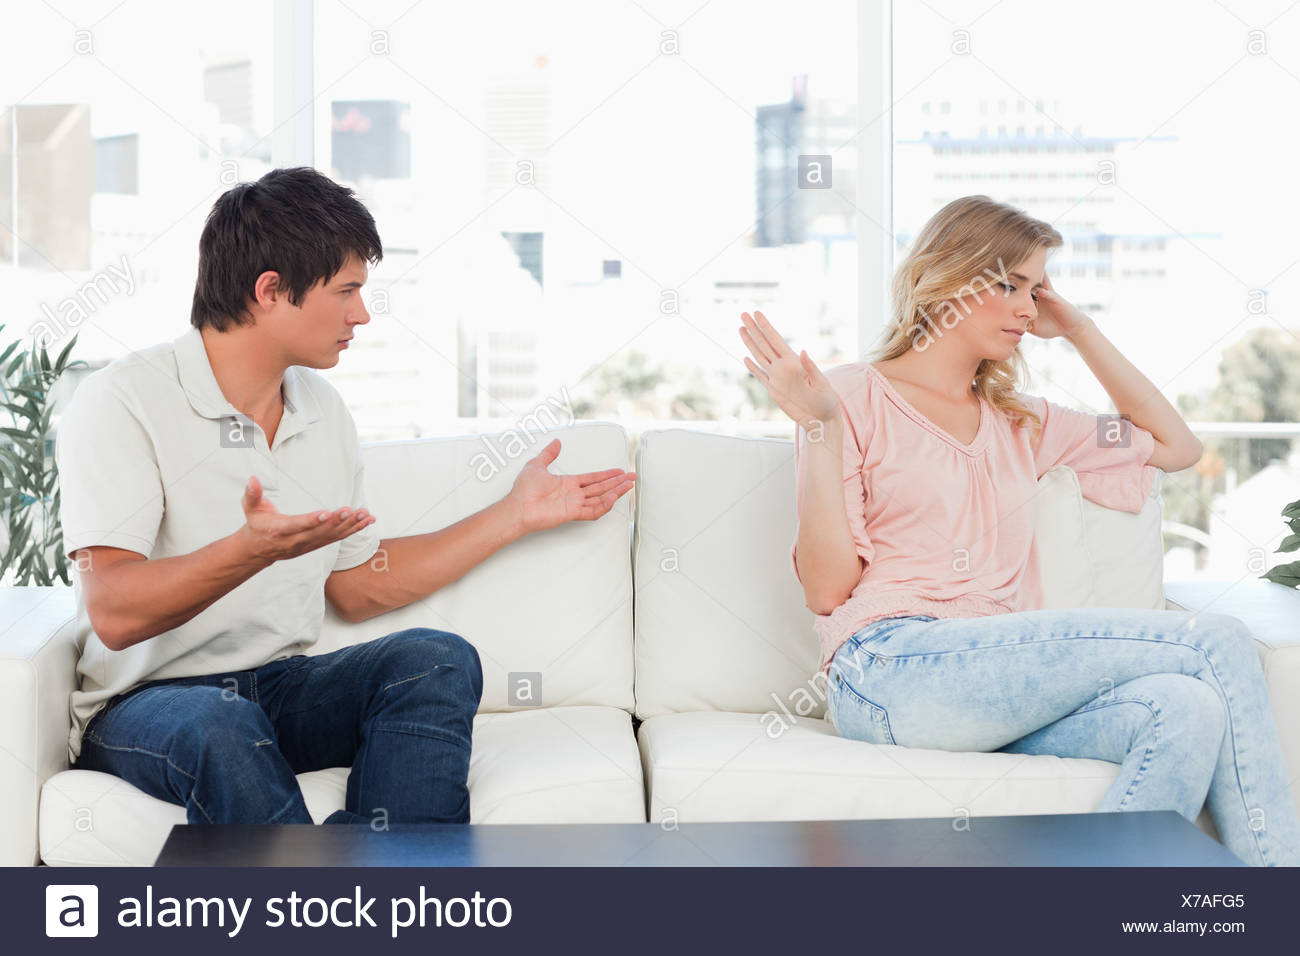 Man trying to apologise but the woman is not interested in it - Stock Image